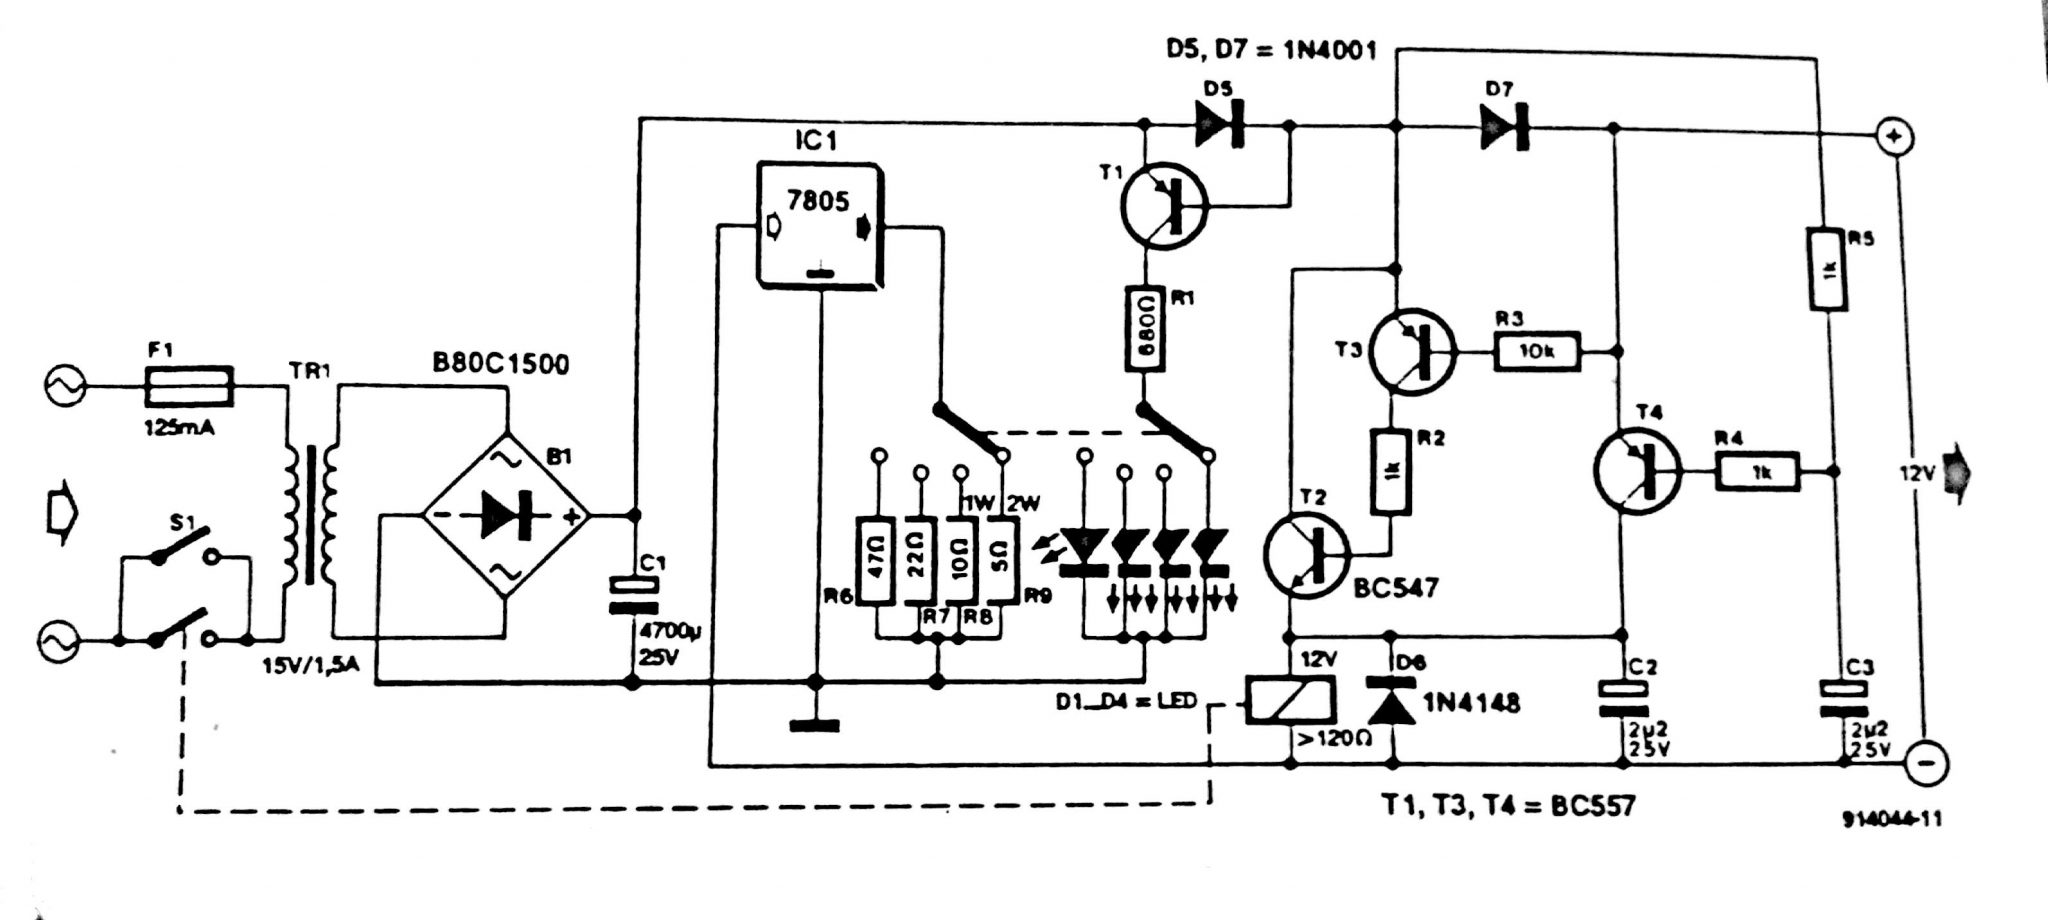 Automatic battery charger circuit diagram circuit diagramz automatic battery charger circuit diagram ccuart Image collections